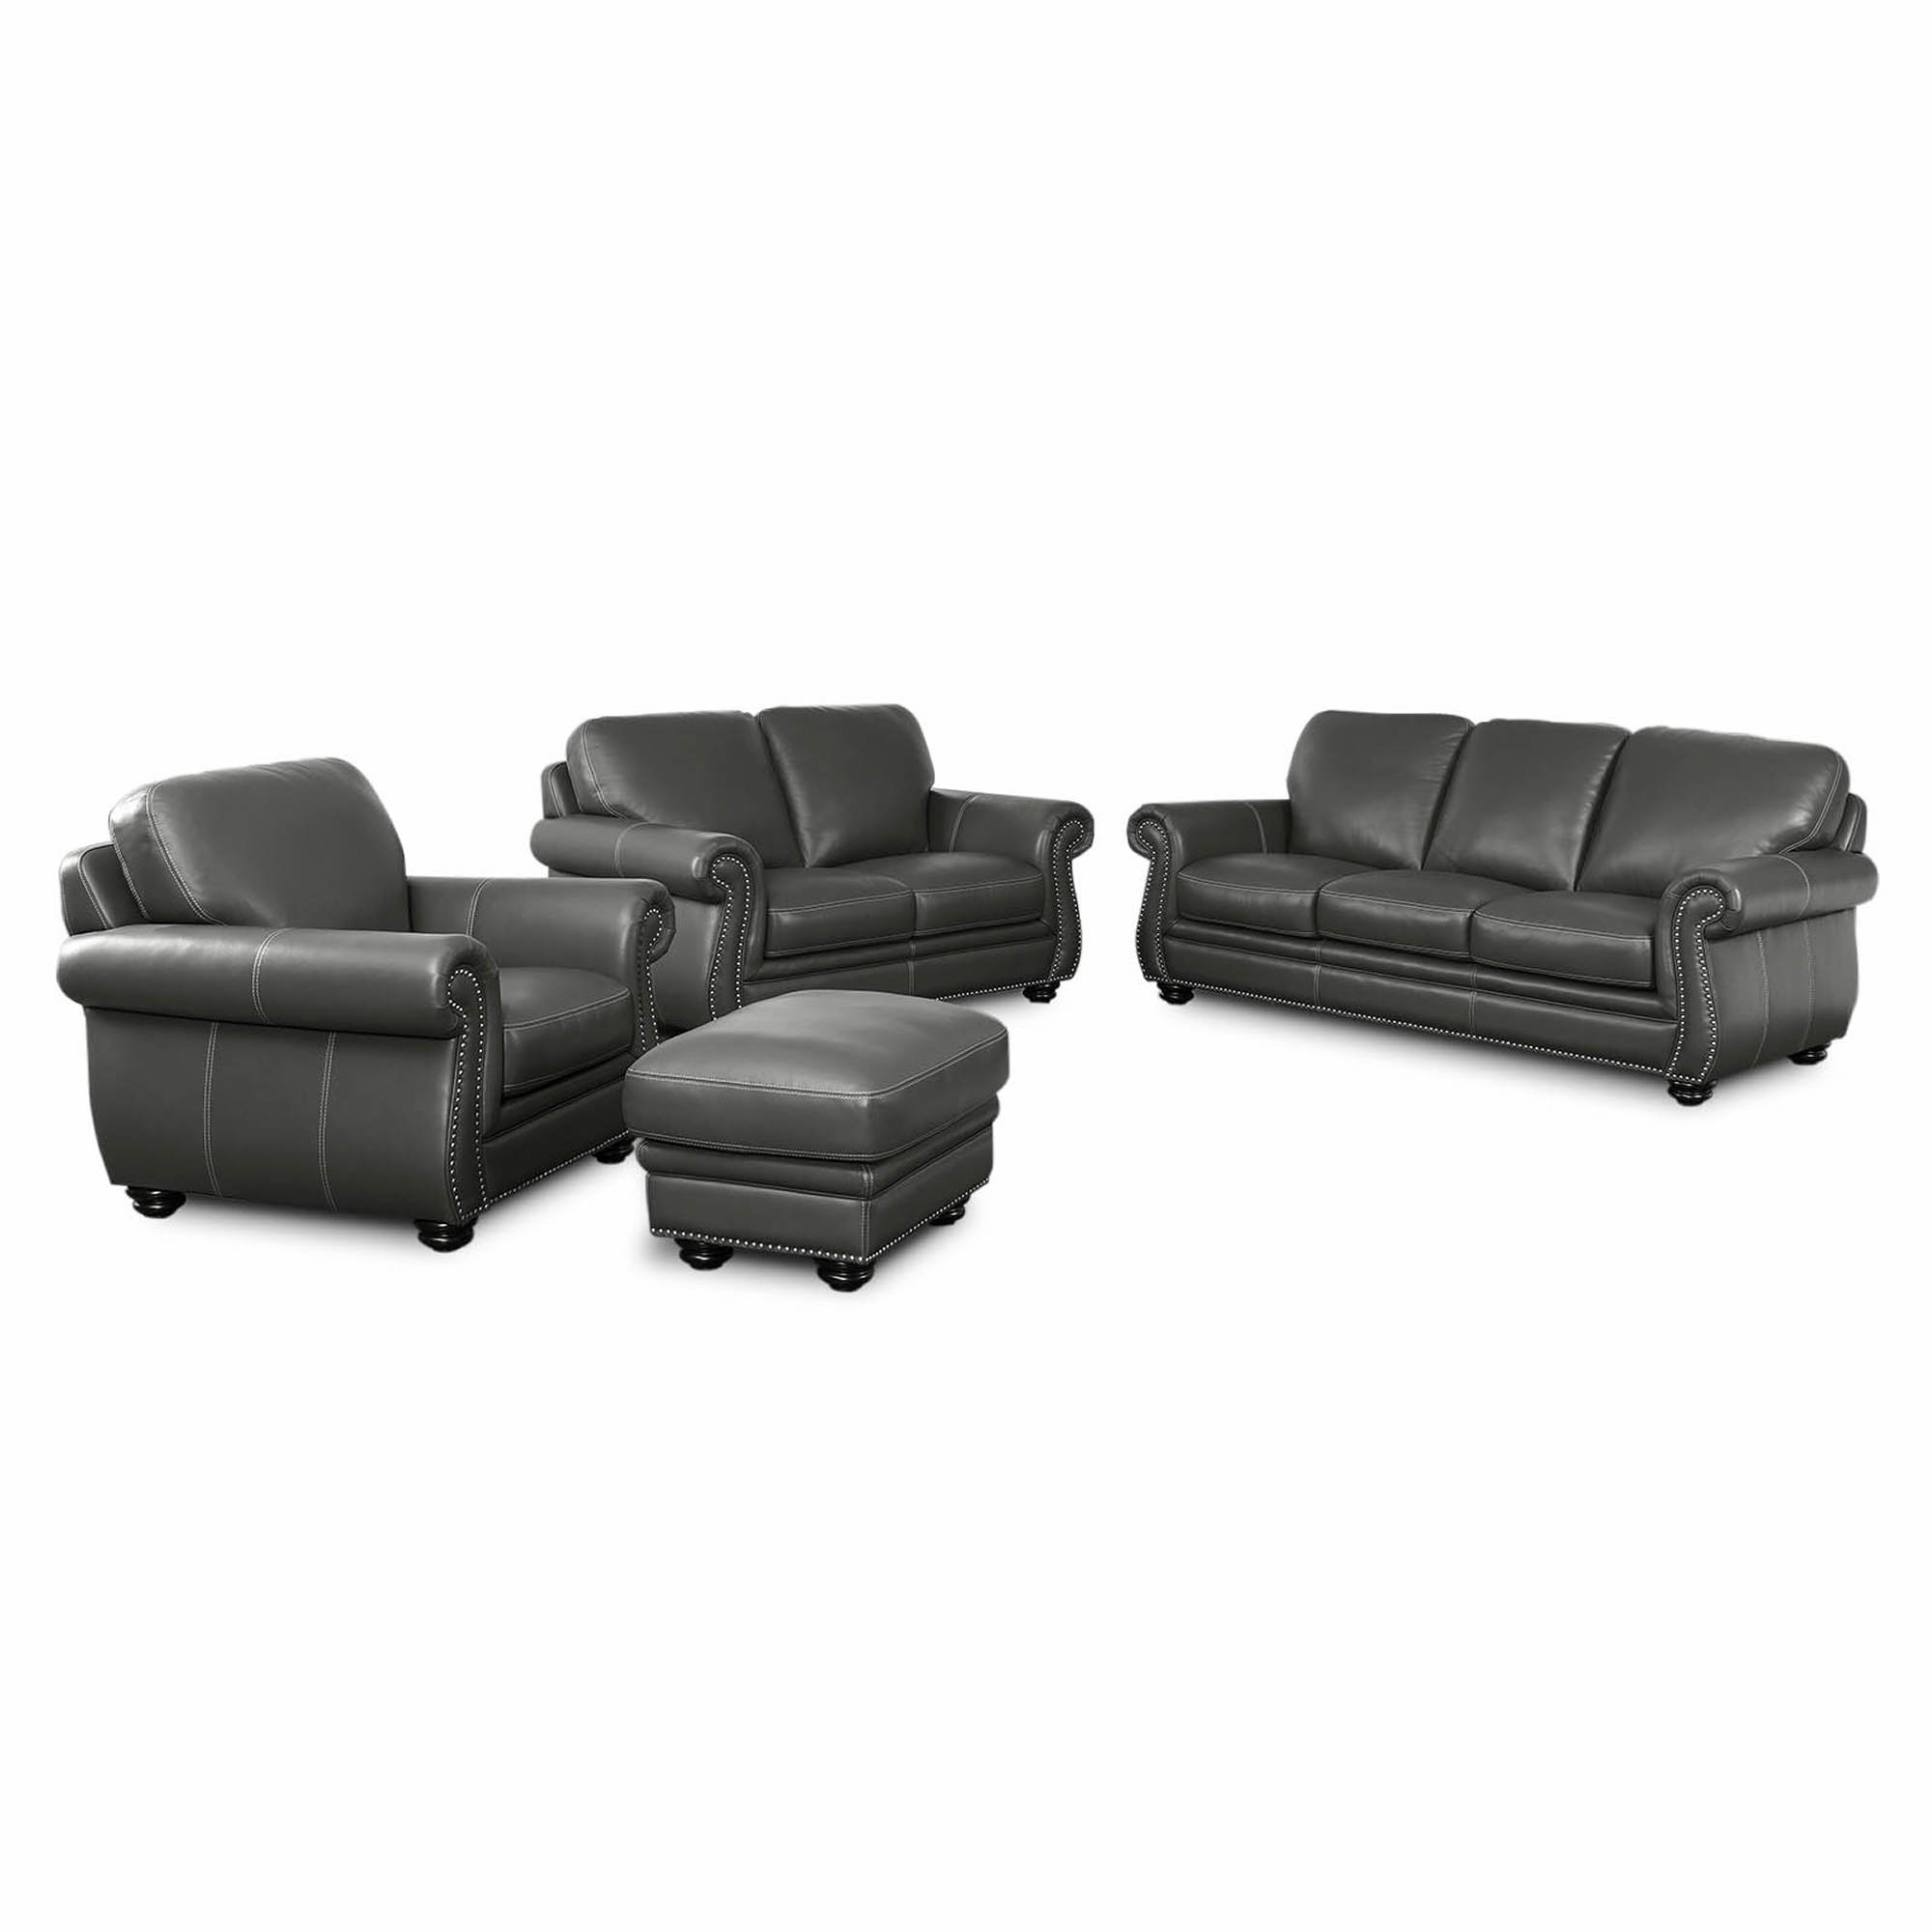 Abbyson Living Clementine 4-Pc. Top-Grain Leather Set - Gray